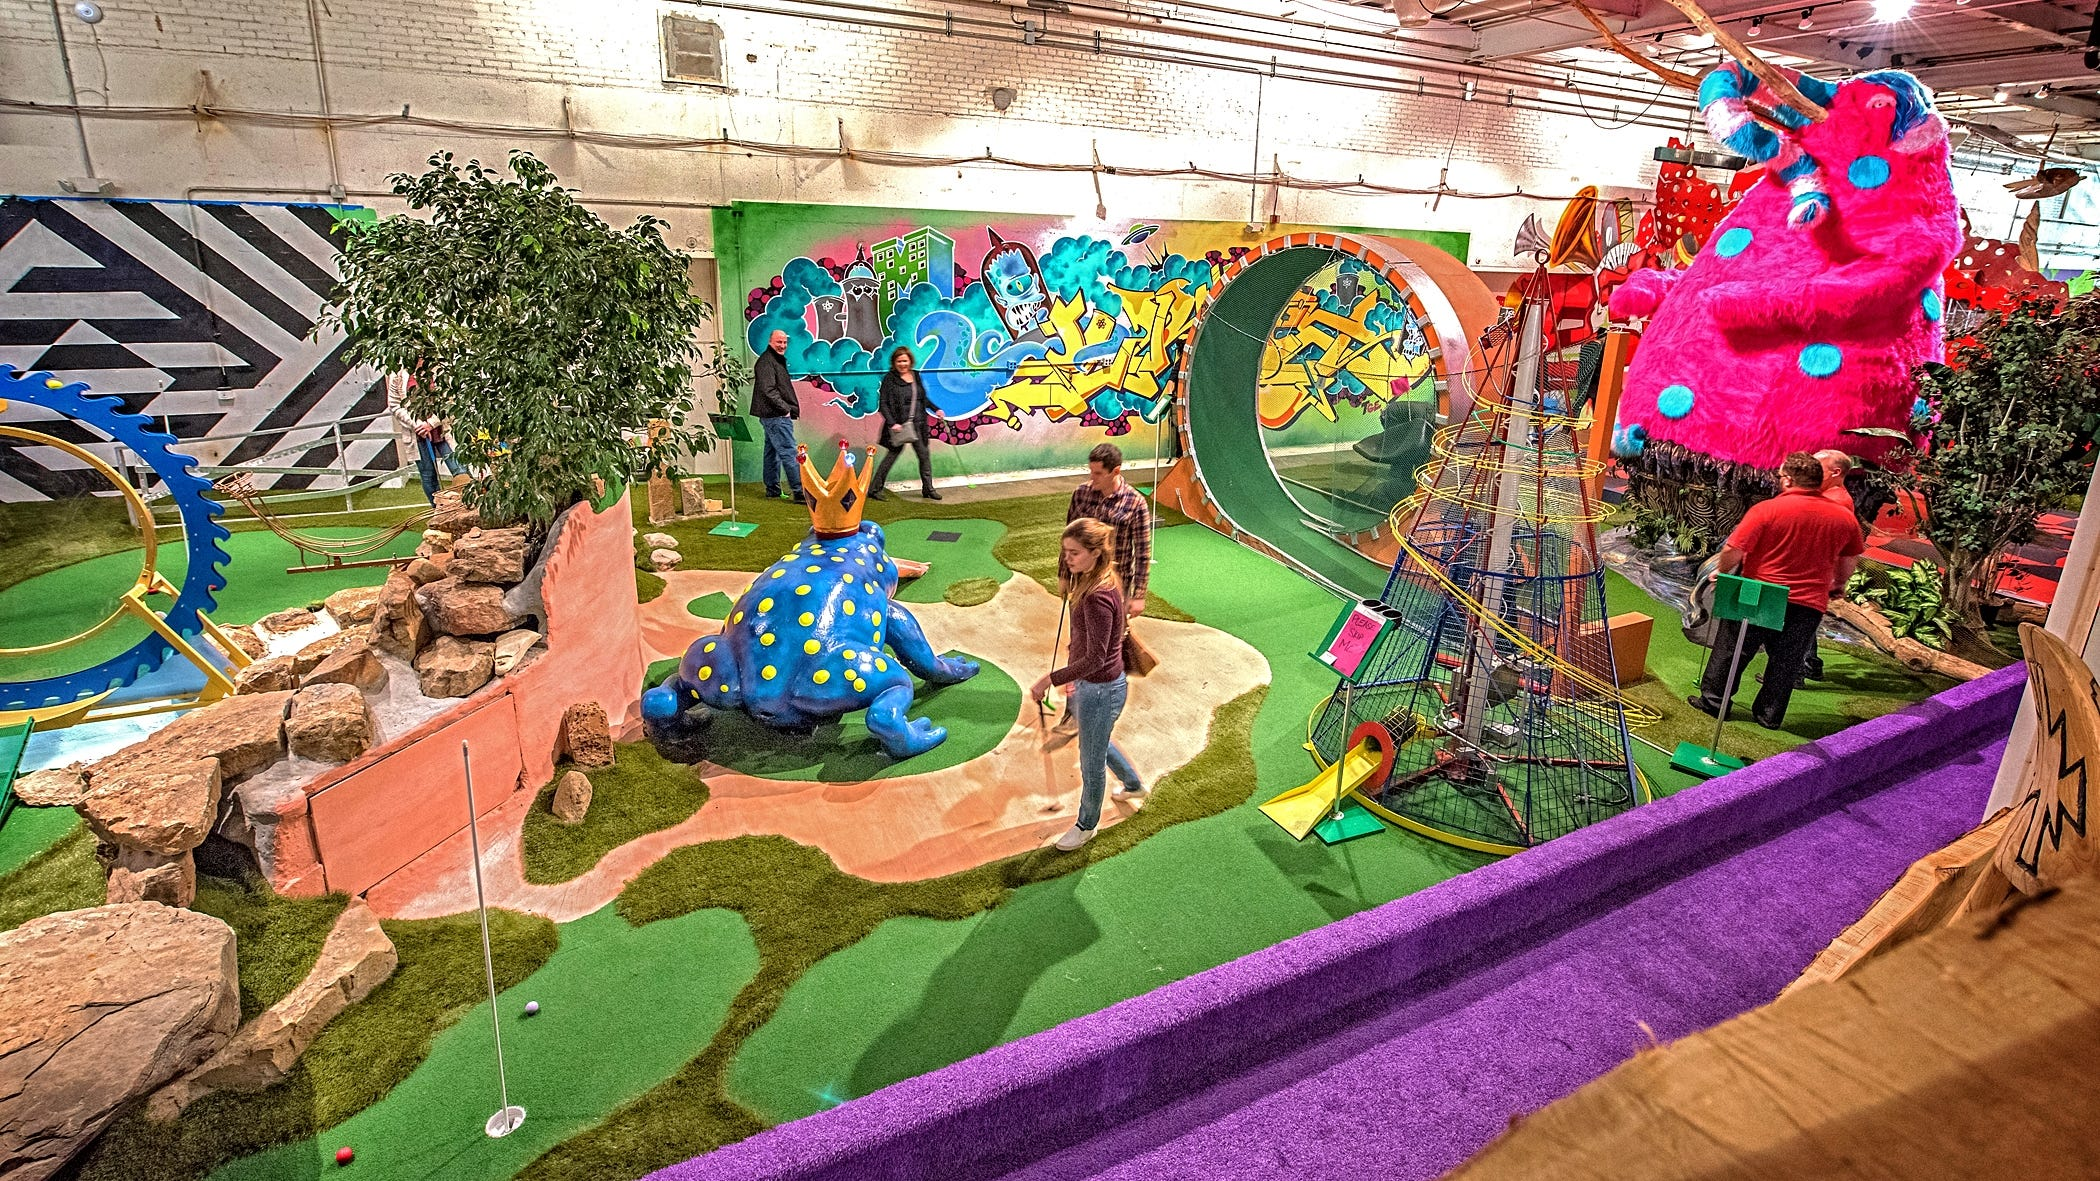 Unusual and historic miniature golf spots around the US   USA Today